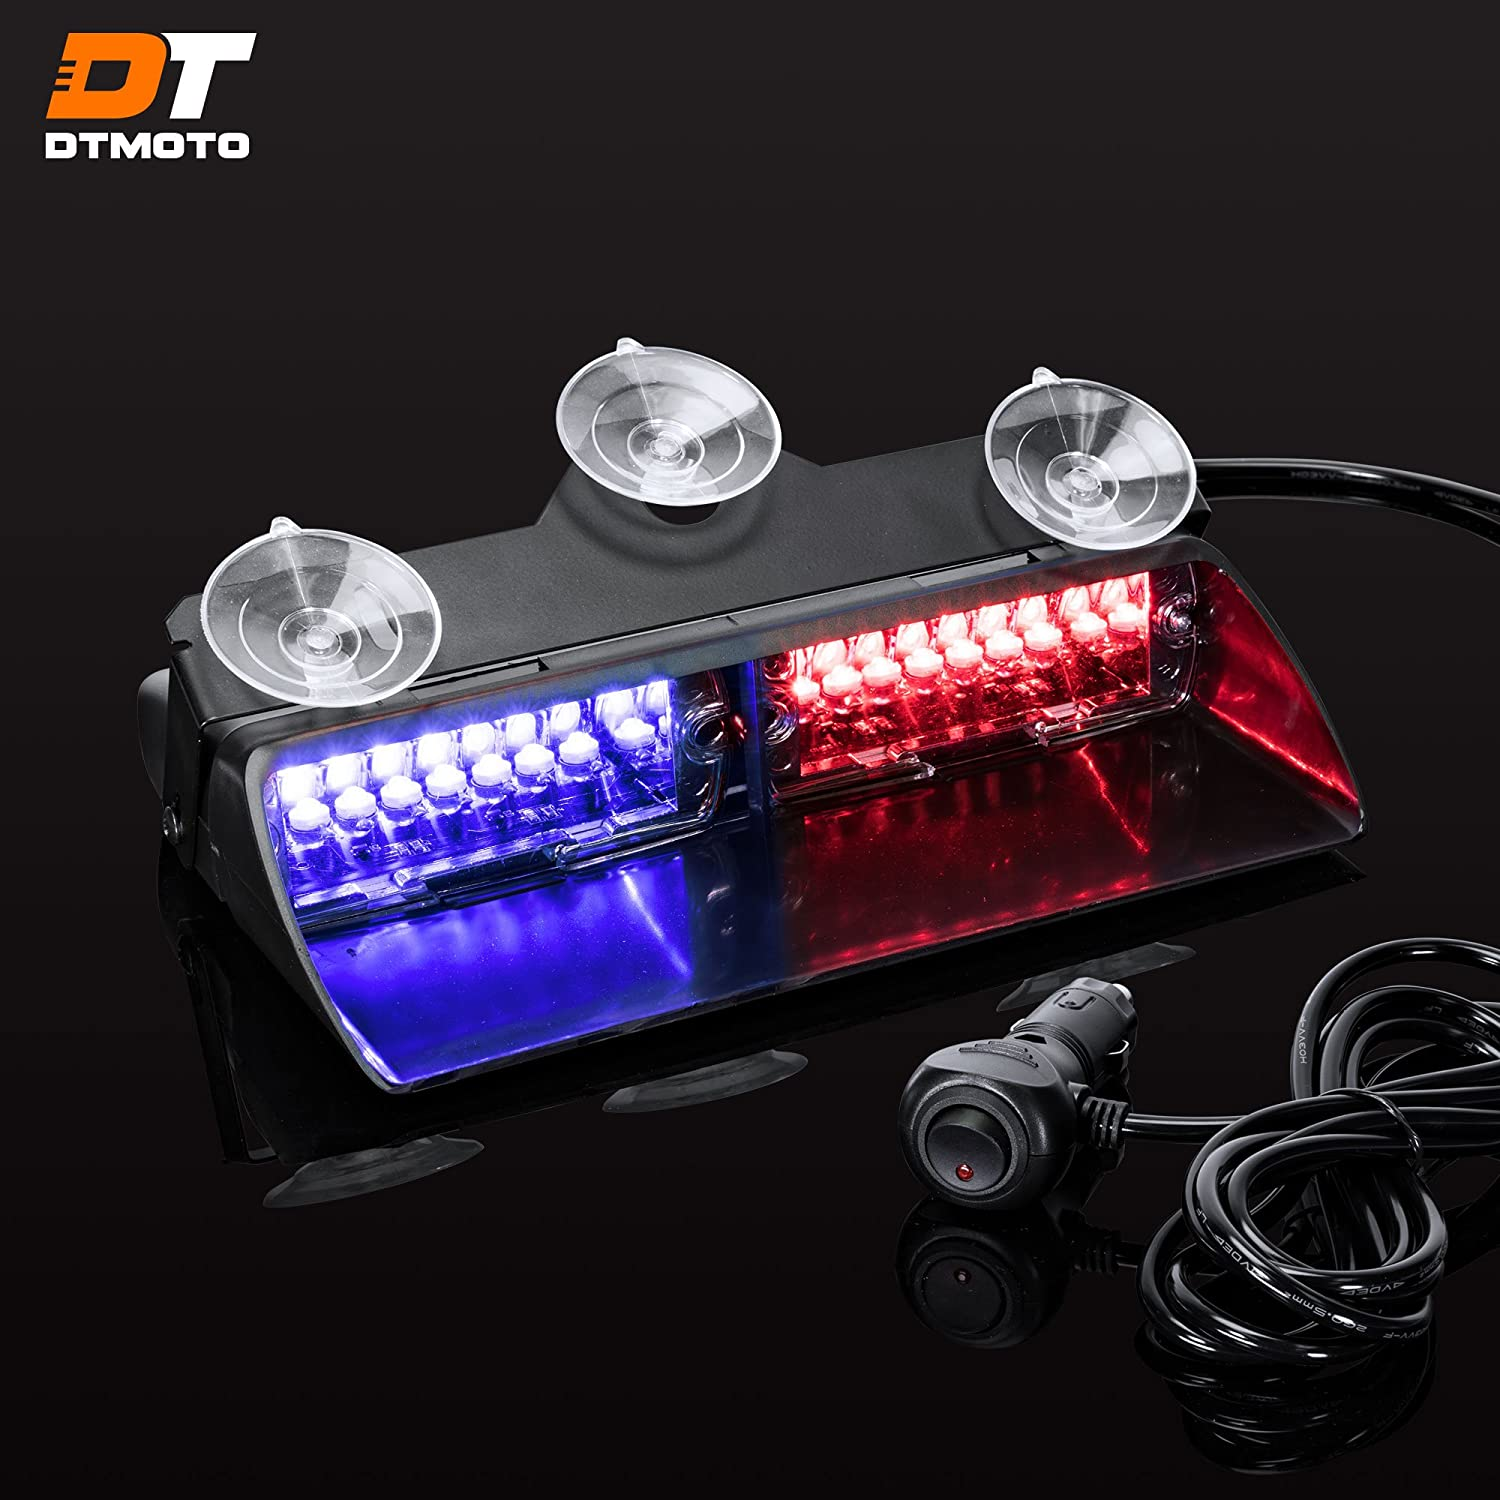 """9"""" 16W Blue Red LED Flashing Police Warning Strobe Dash Light for Emergency Vehicles - Interior Emergency Police Lights For Windshield w/Suction Cup"""